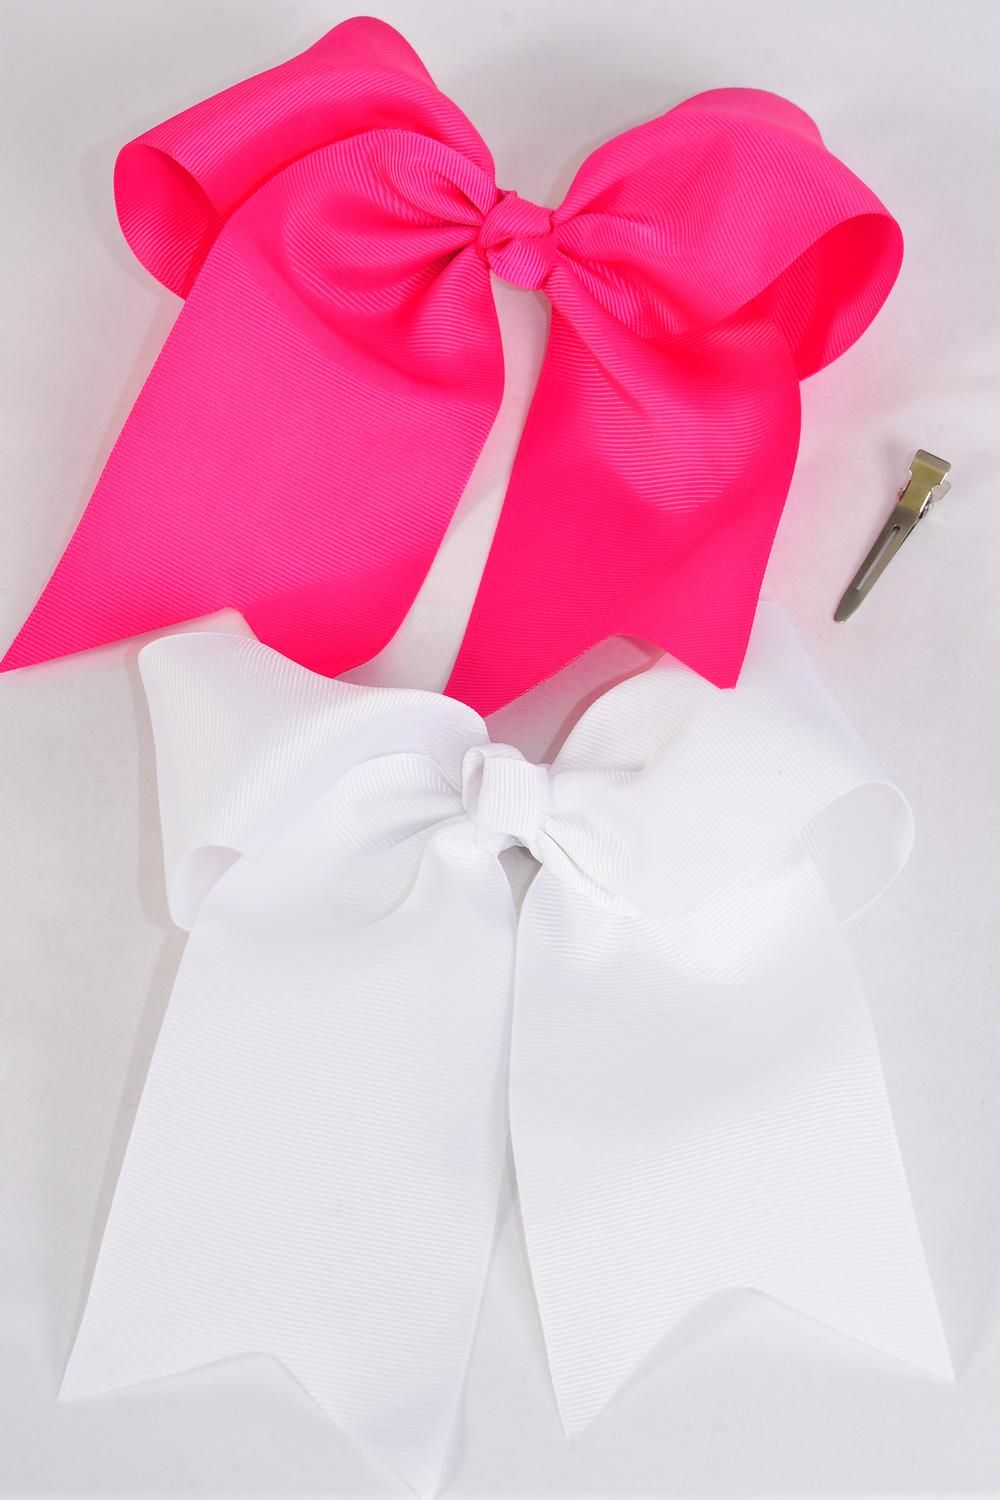 "Hair Bow Extra Jumbo Long Tail Fuchsia & White Mix Cheer Type Bow Grosgrain Bow-tie/DZ **Fuchsia & White Mix** Alligator Clip,Size-6.5""x 6"",6 of each Colotr Asst,Clip Strip & UPC Code"